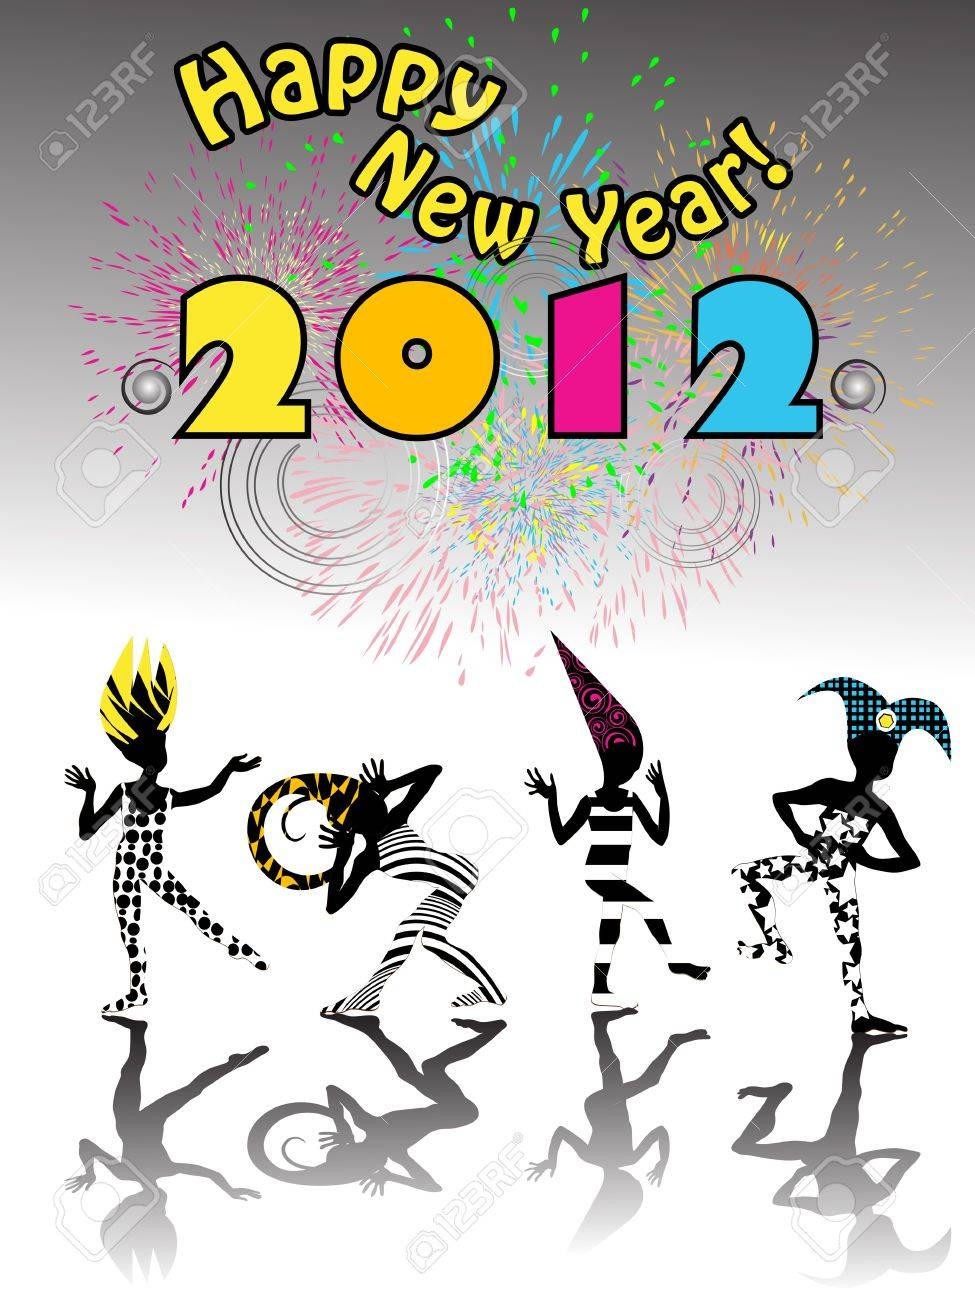 2012 new years eve carnival happy silhouettes under clolorful fireworks Stock Vector - 11053909